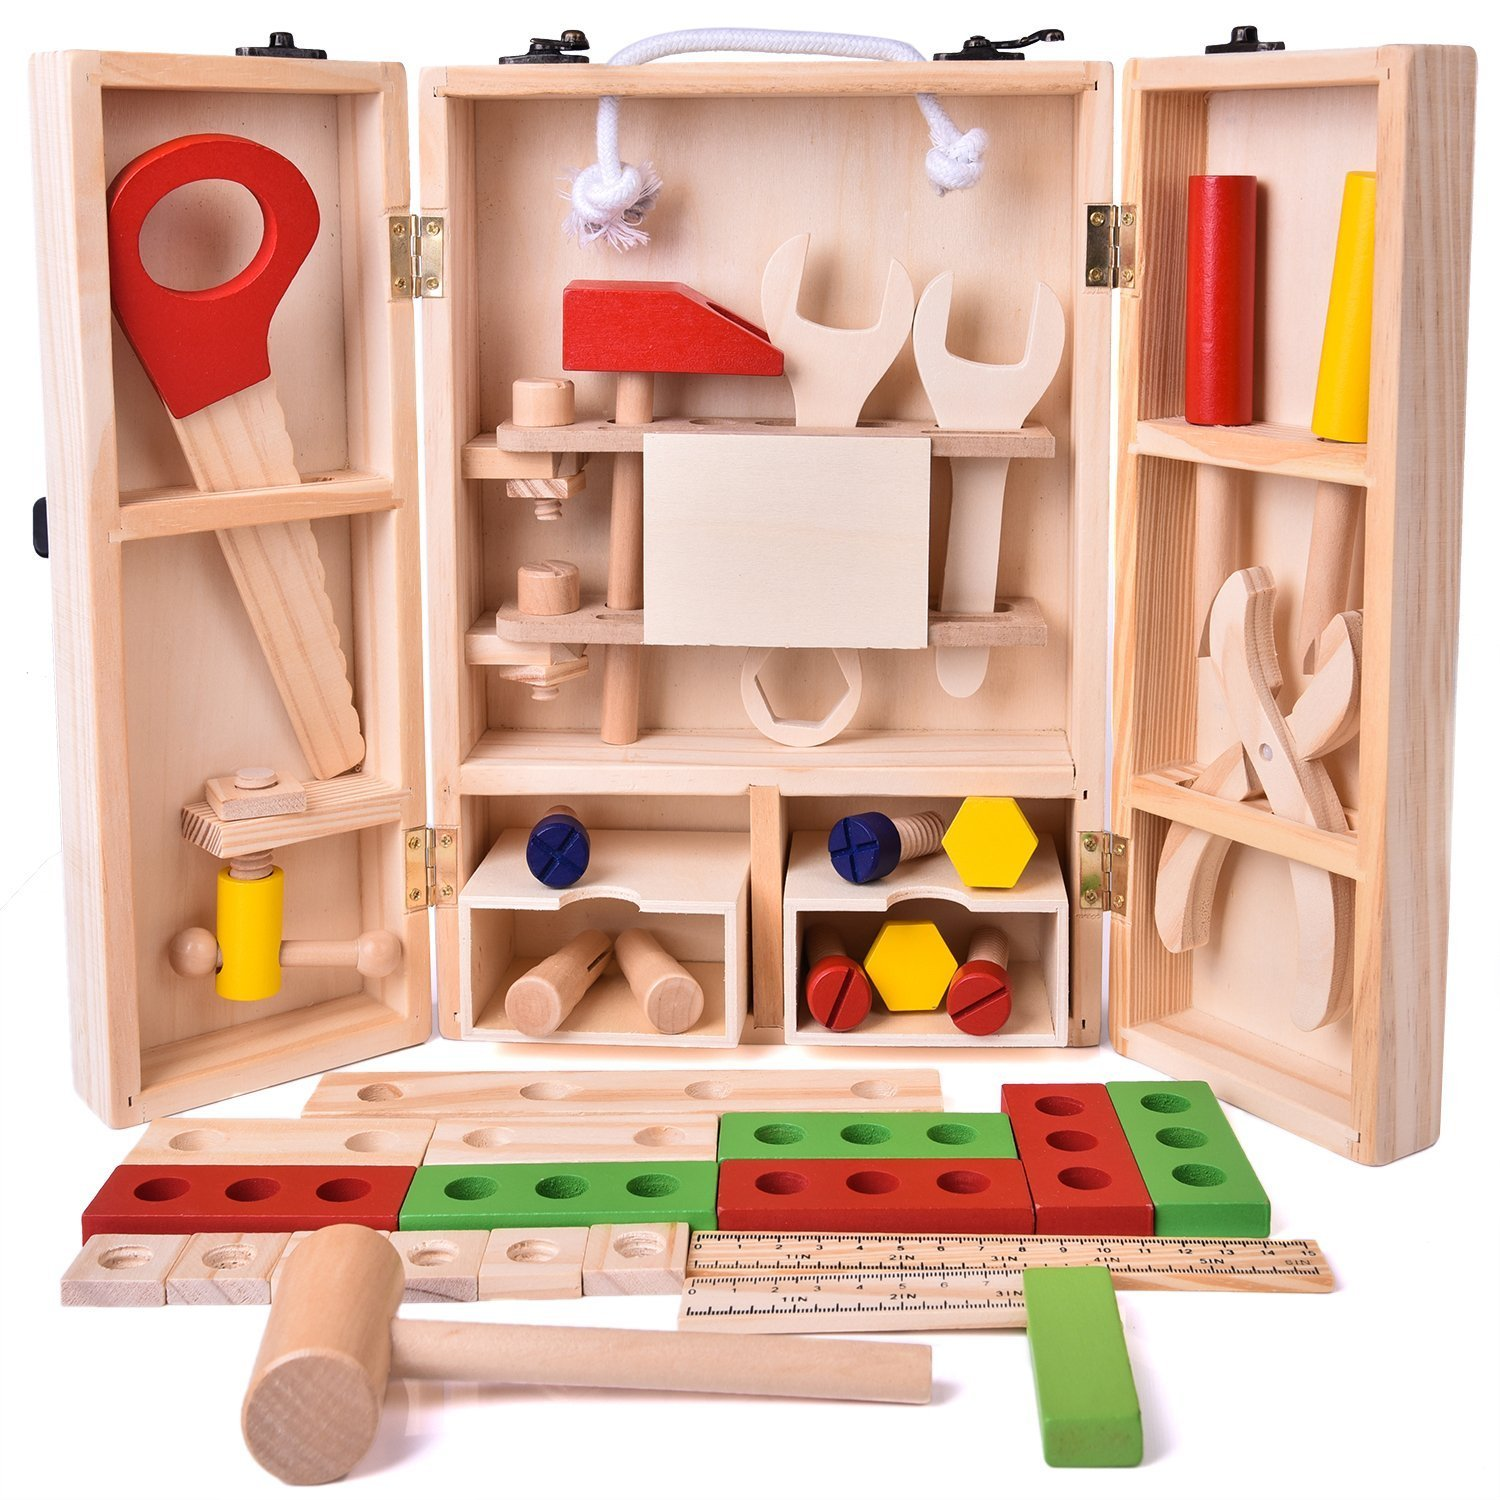 Toyshine Pretend Play Wooden Tool Set Toy with Carry Case Packaging (Multicolour) product image